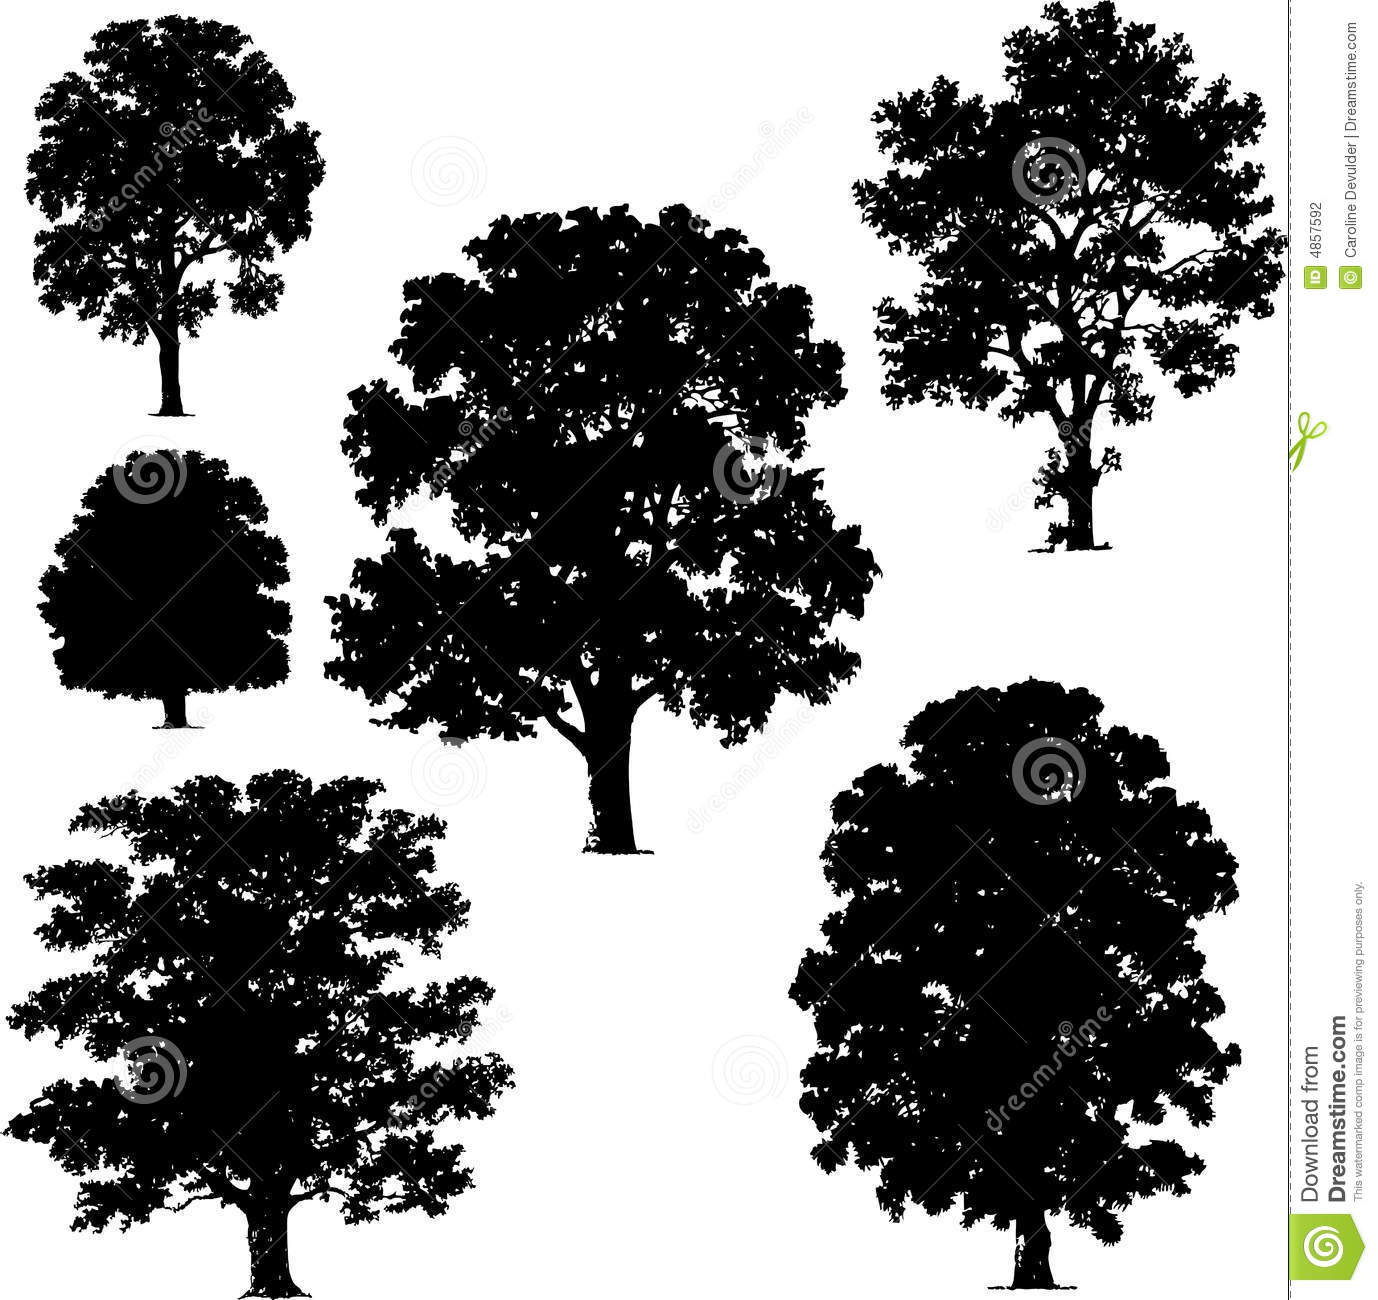 Vector Illustration Tree: Collection Of Tree Vectors Stock Vector. Illustration Of